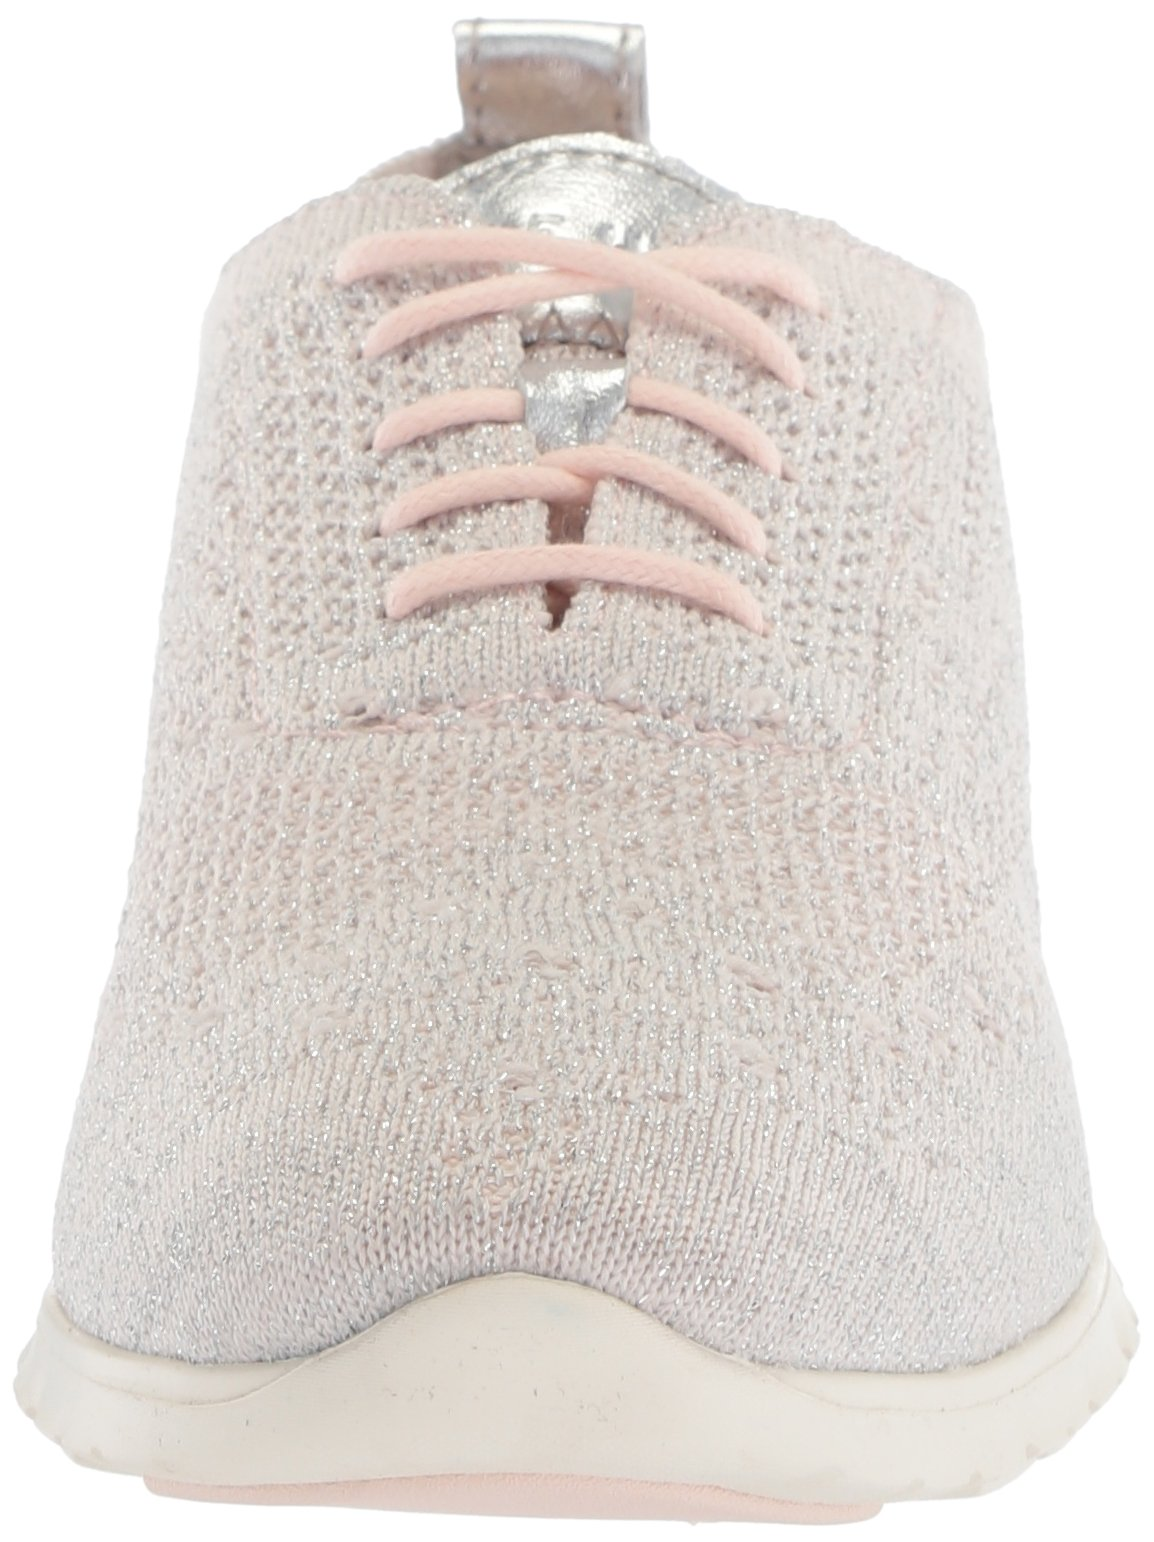 Cole Haan Women's Zerogrand Stitchlite Oxford, Peach Blush, 8.5 B US by Cole Haan (Image #4)